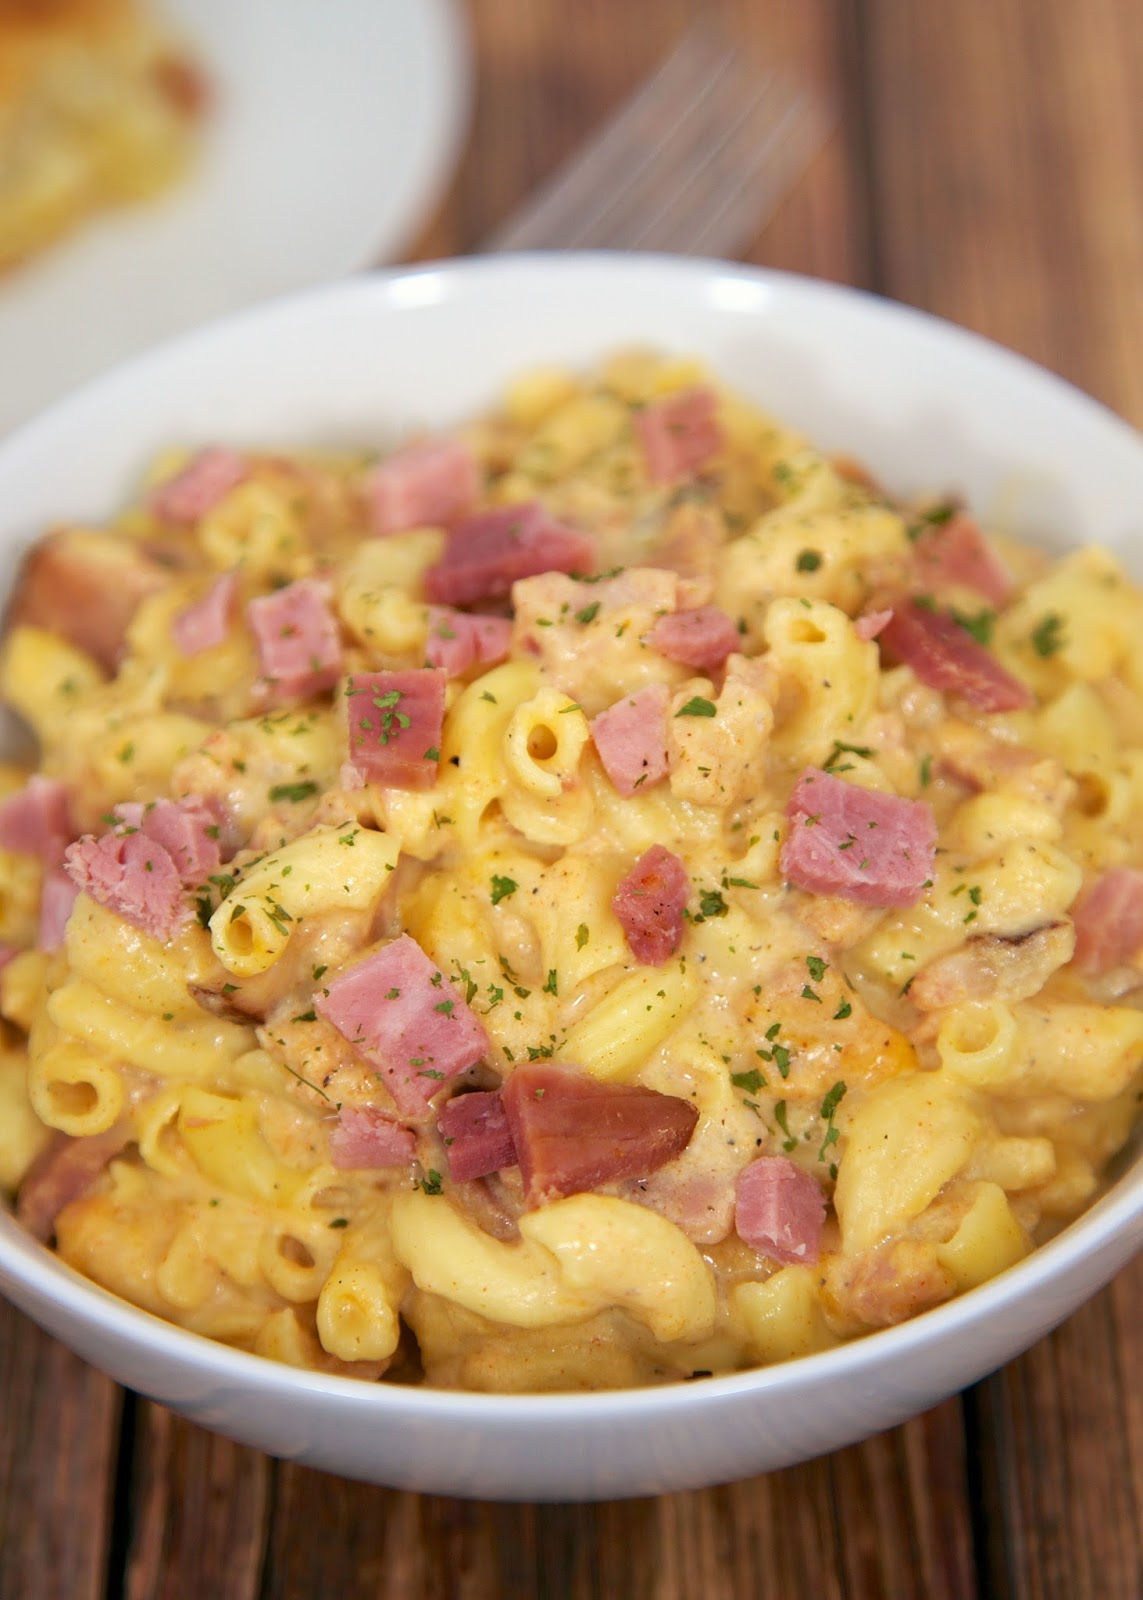 Slow Cooker Macaroni & Cheese with Ham - great flavor and ready in 90 minutes. Can serve without ham as side dish. Macaroni, ham, milk, dijon mustard, onion powder, garlic powder, paprika, salt, pepper and cheddar cheese. Our FAVORITE mac and cheese recipe!!